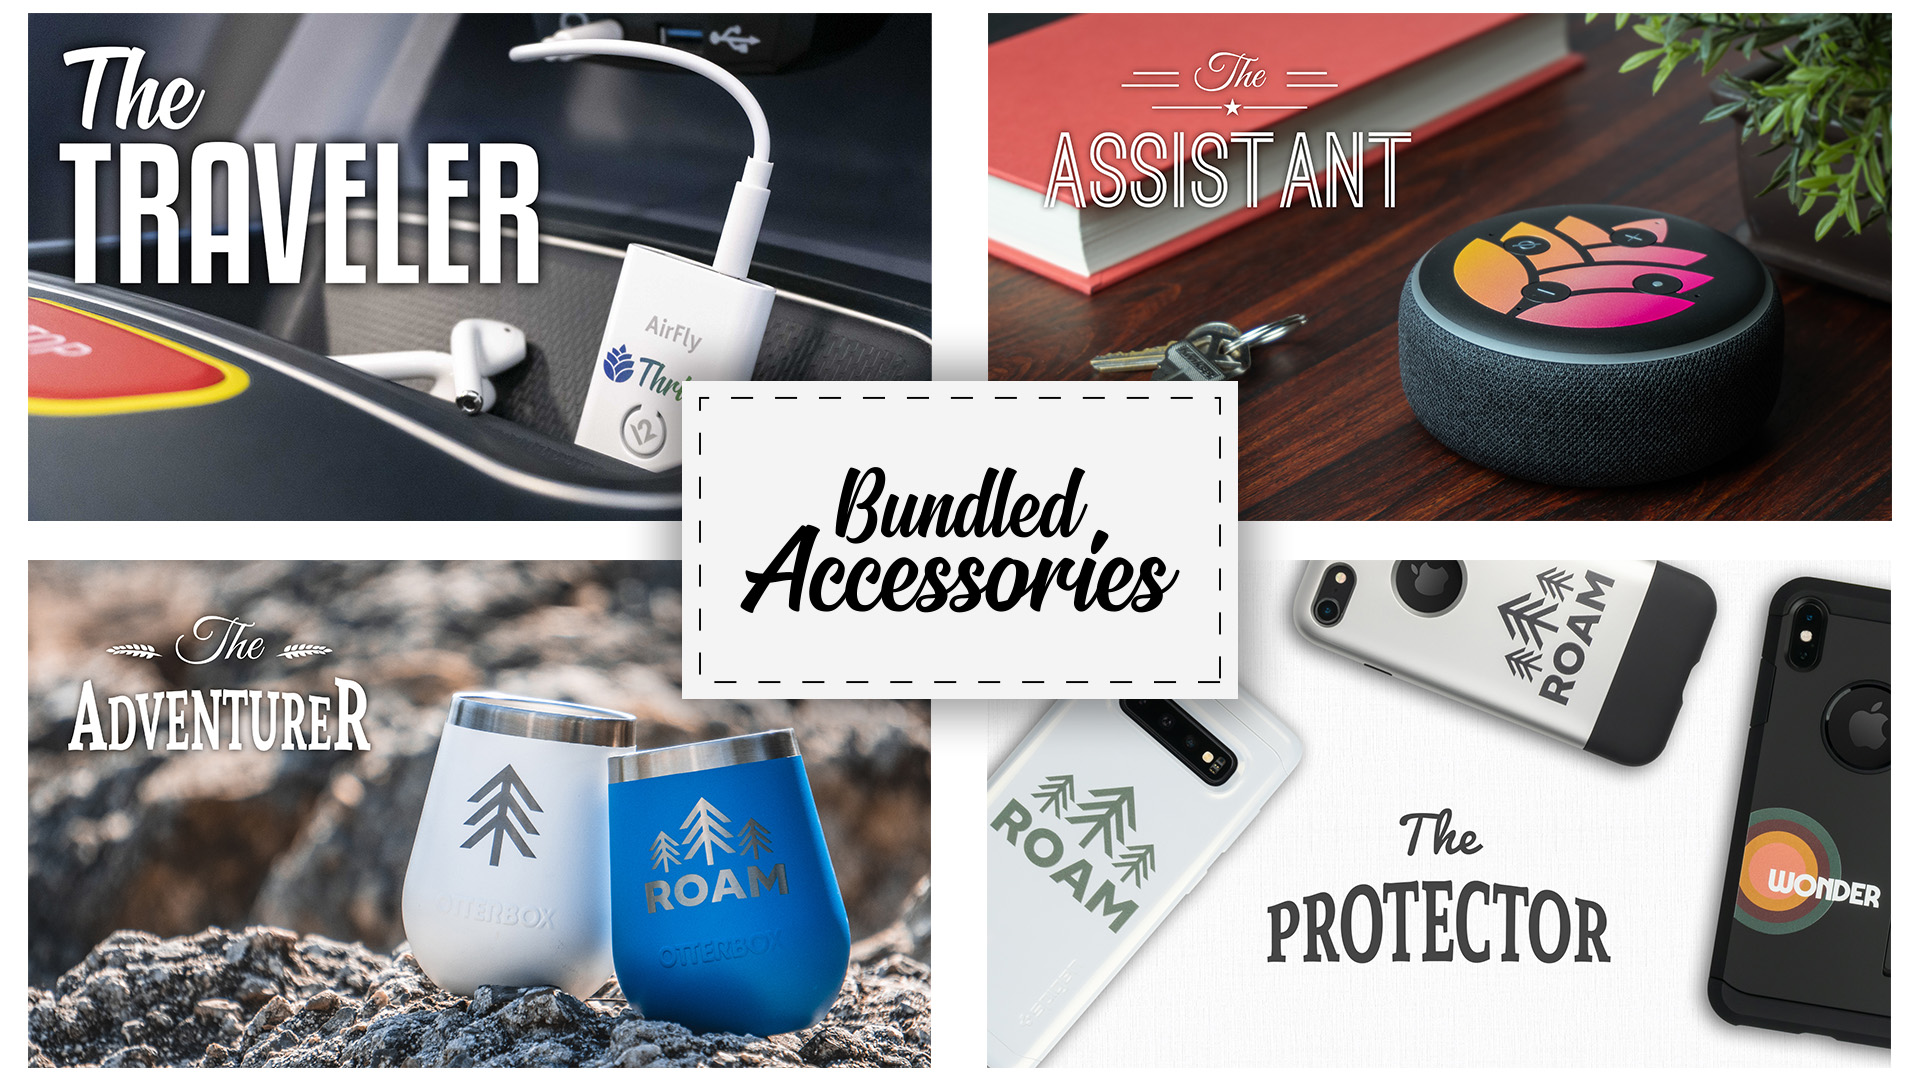 Customized Accessory Bundles for all your gifting needs